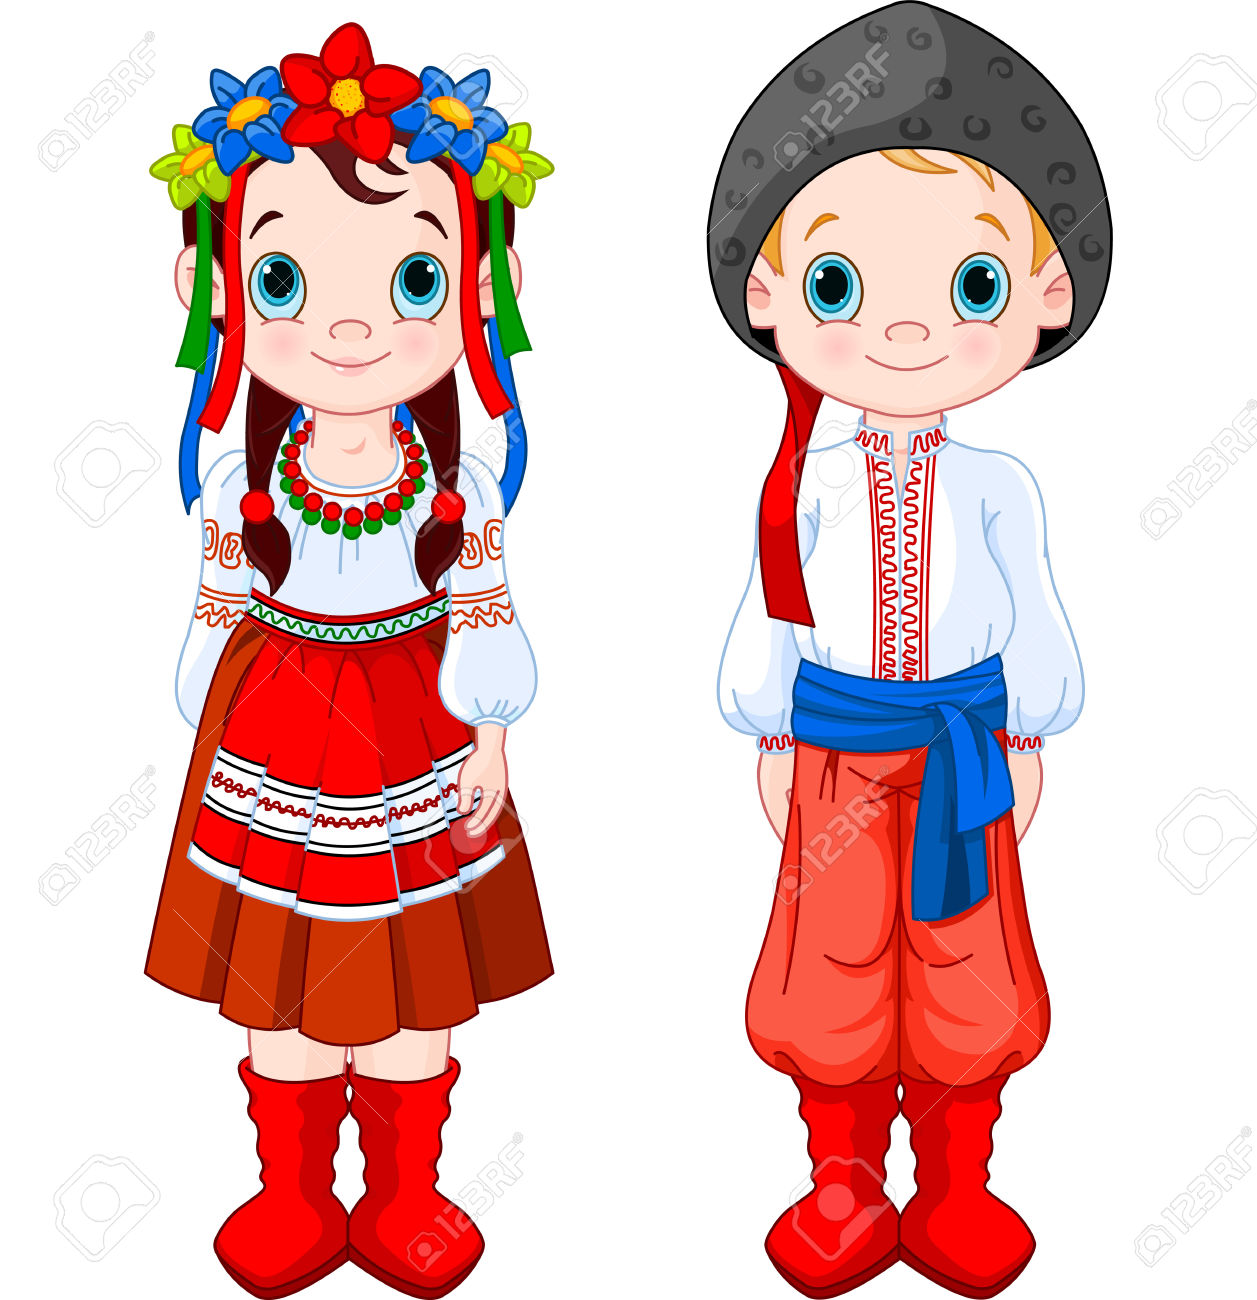 Traditional costumes clipart picture free library 4,748 National Costume Cliparts, Stock Vector And Royalty Free ... picture free library